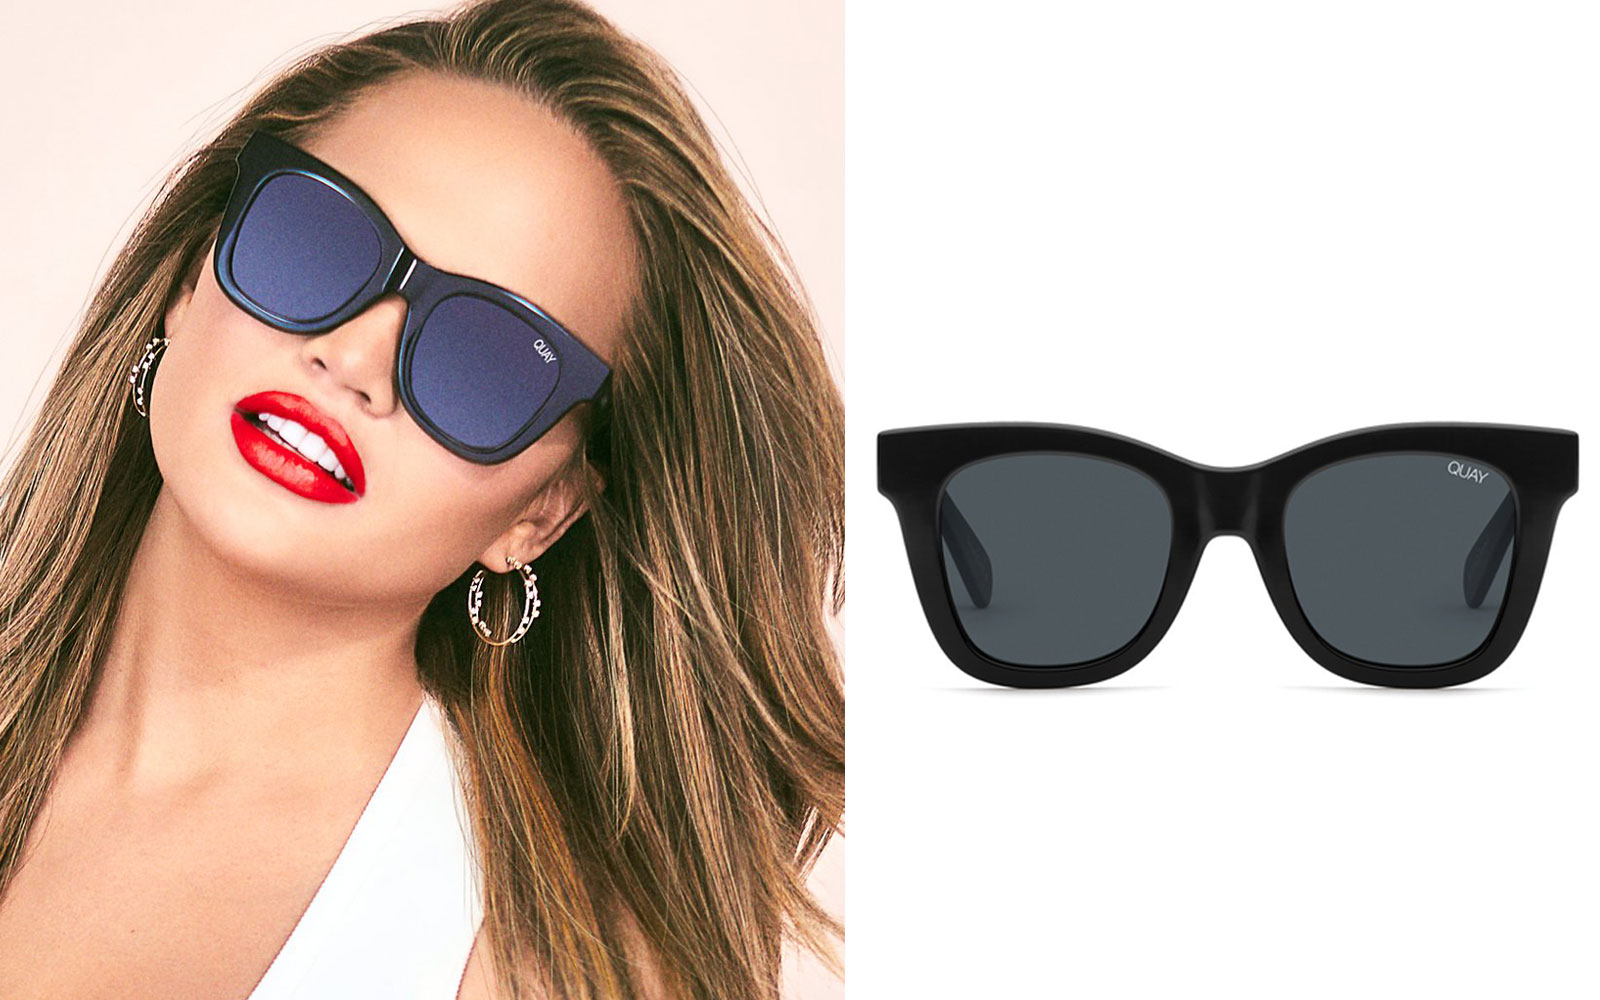 Chrissy Teigen wearing black sunglasses